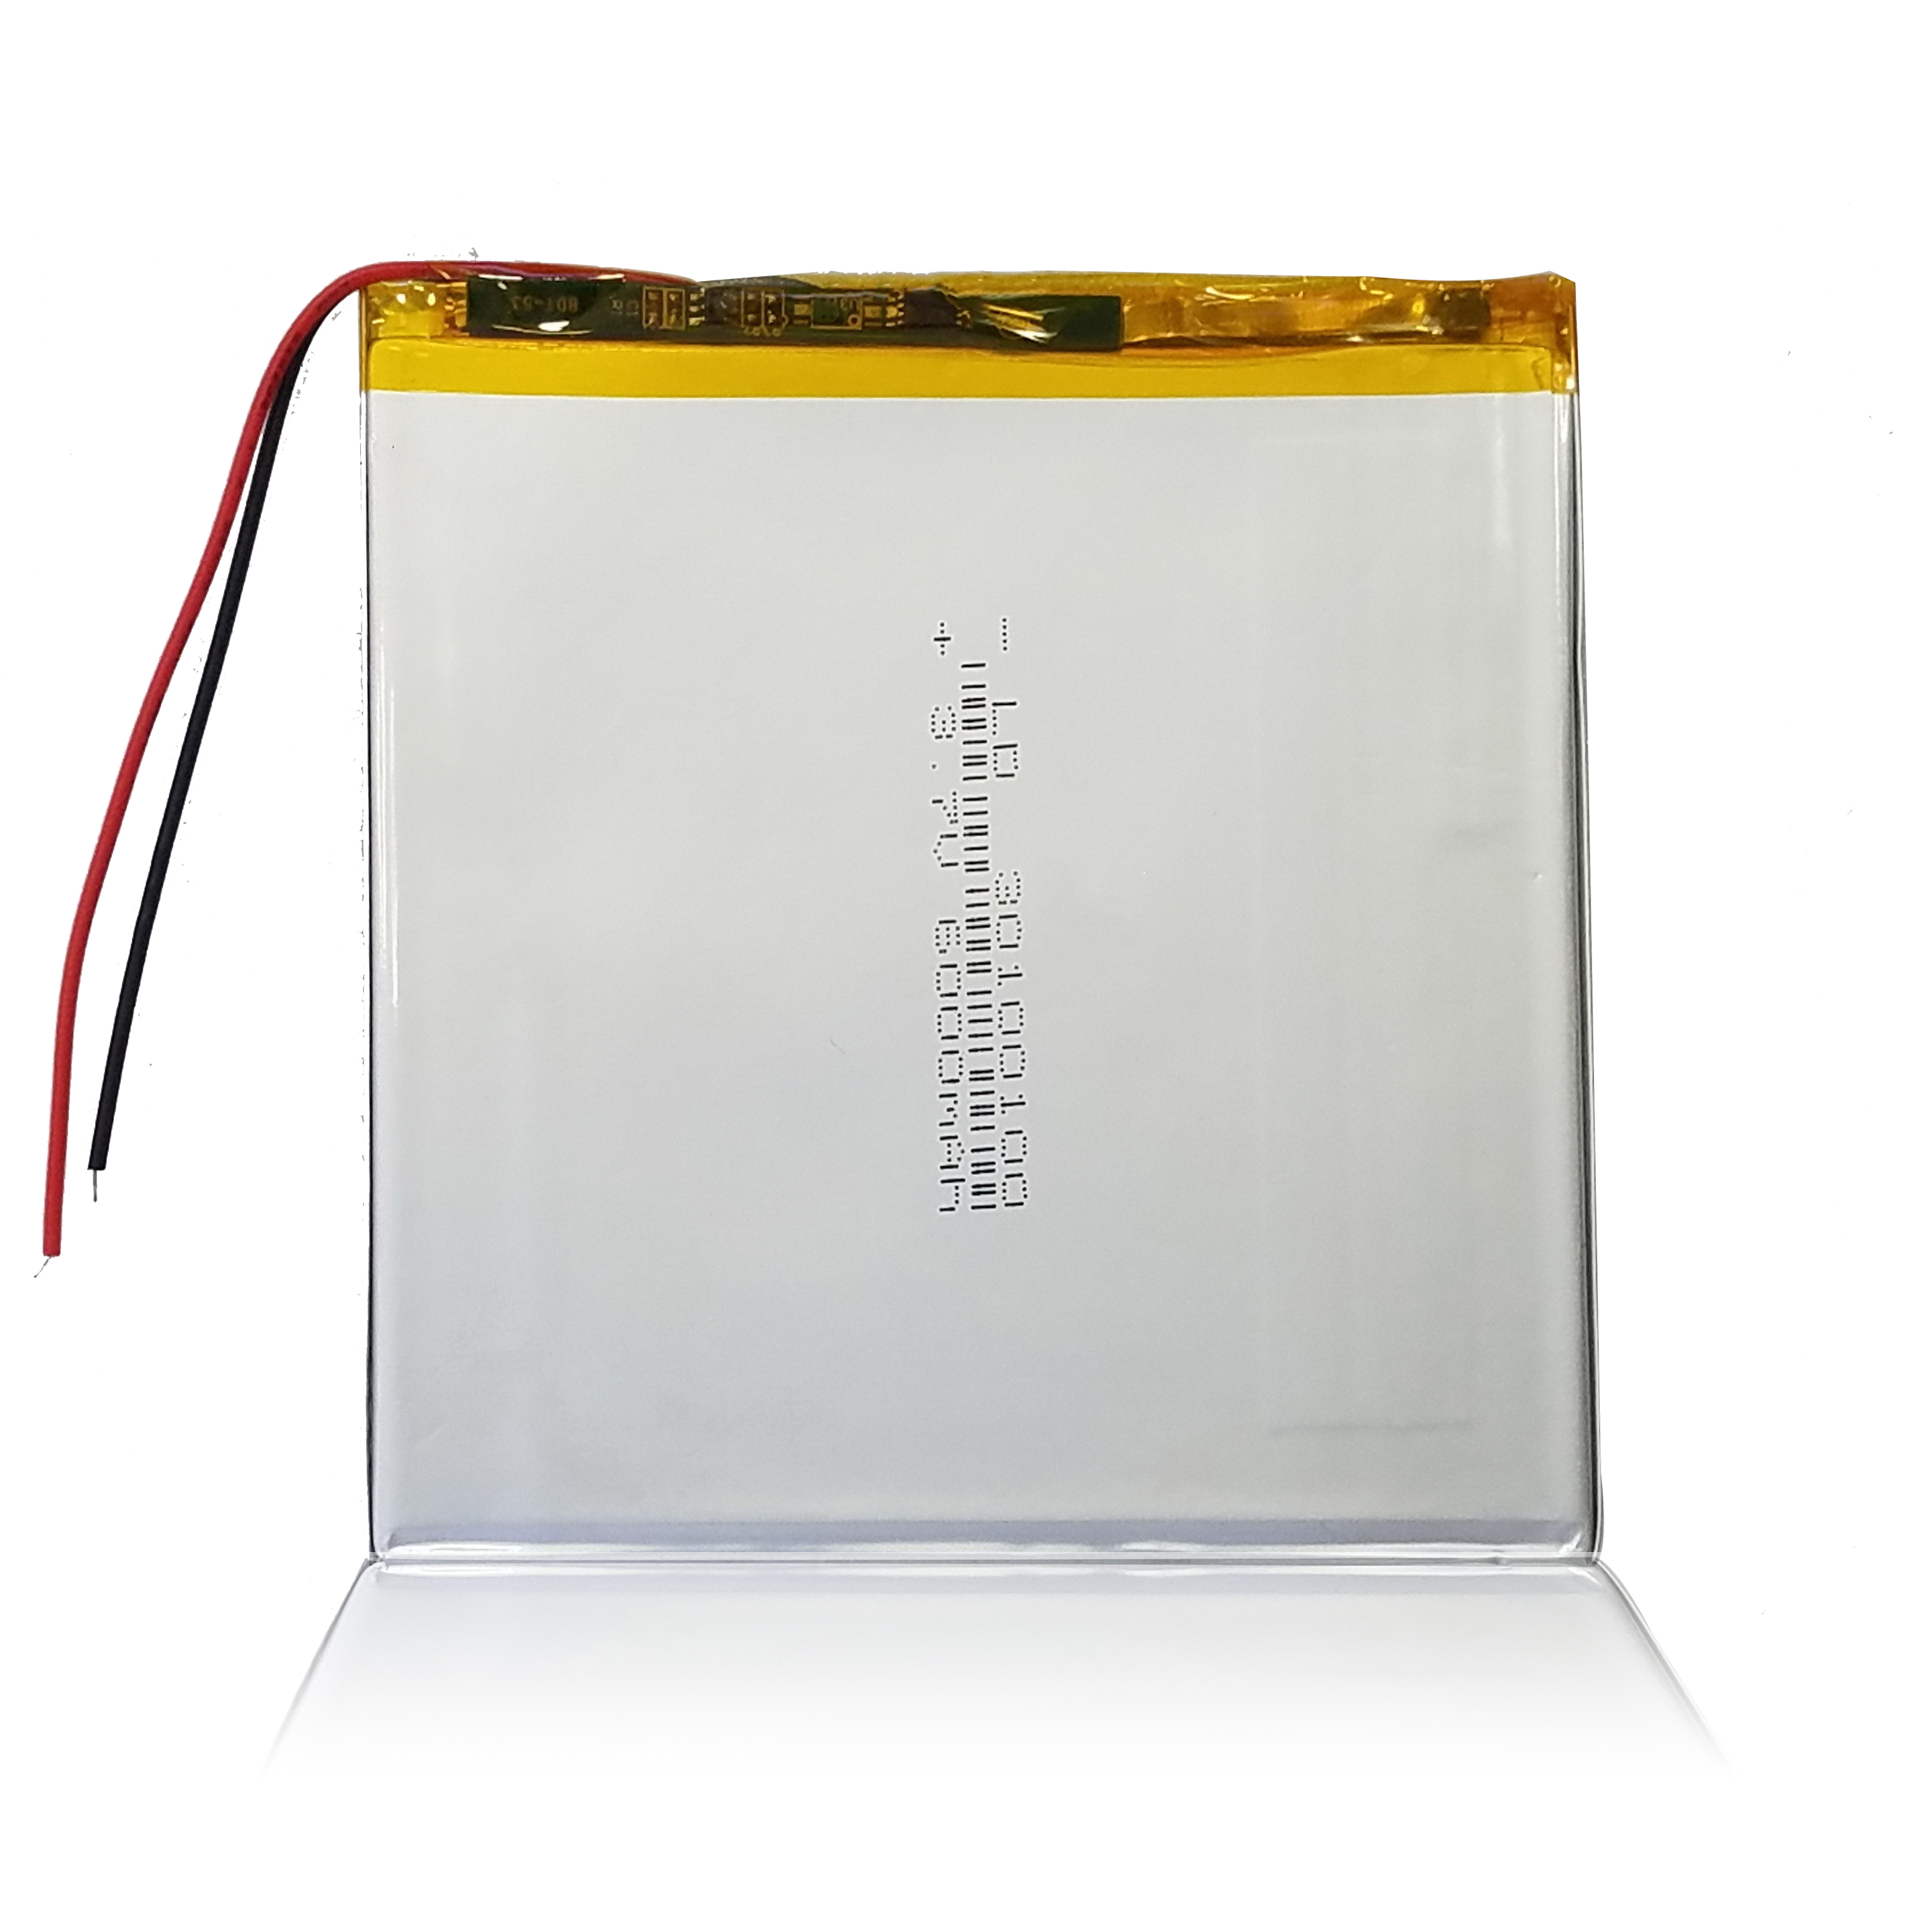 30100100 <font><b>3.7V</b></font> <font><b>6000mAh</b></font> Rechargeable Li-Polymer Li-ion <font><b>Battery</b></font> For Digma Plane 9505 3G PS9034MG 9506 4G PS9059ML 9507M 3G PS9079MG image